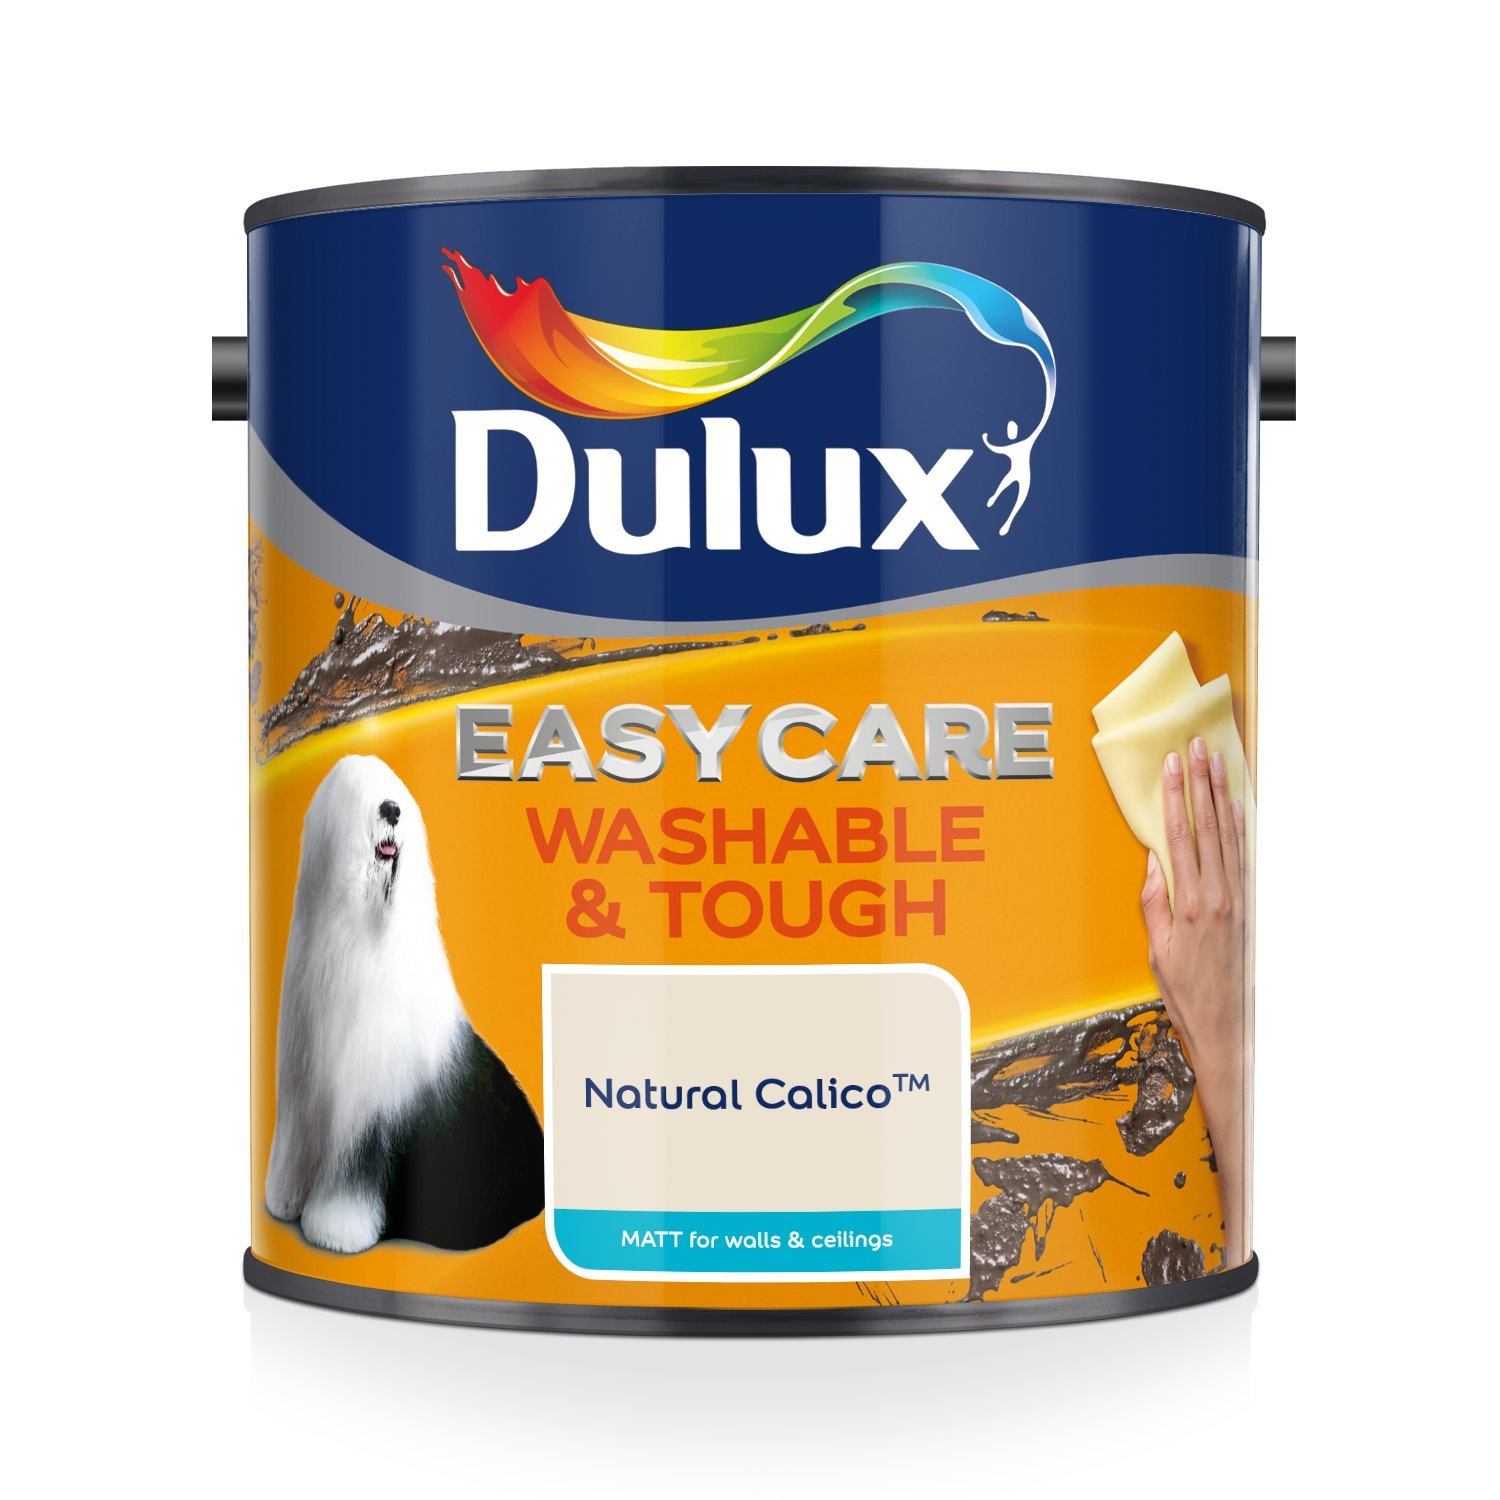 Dulux Easycare Washable and Tough Matt Paint, Natural Calico 2.5 L AkzoNobel 403201